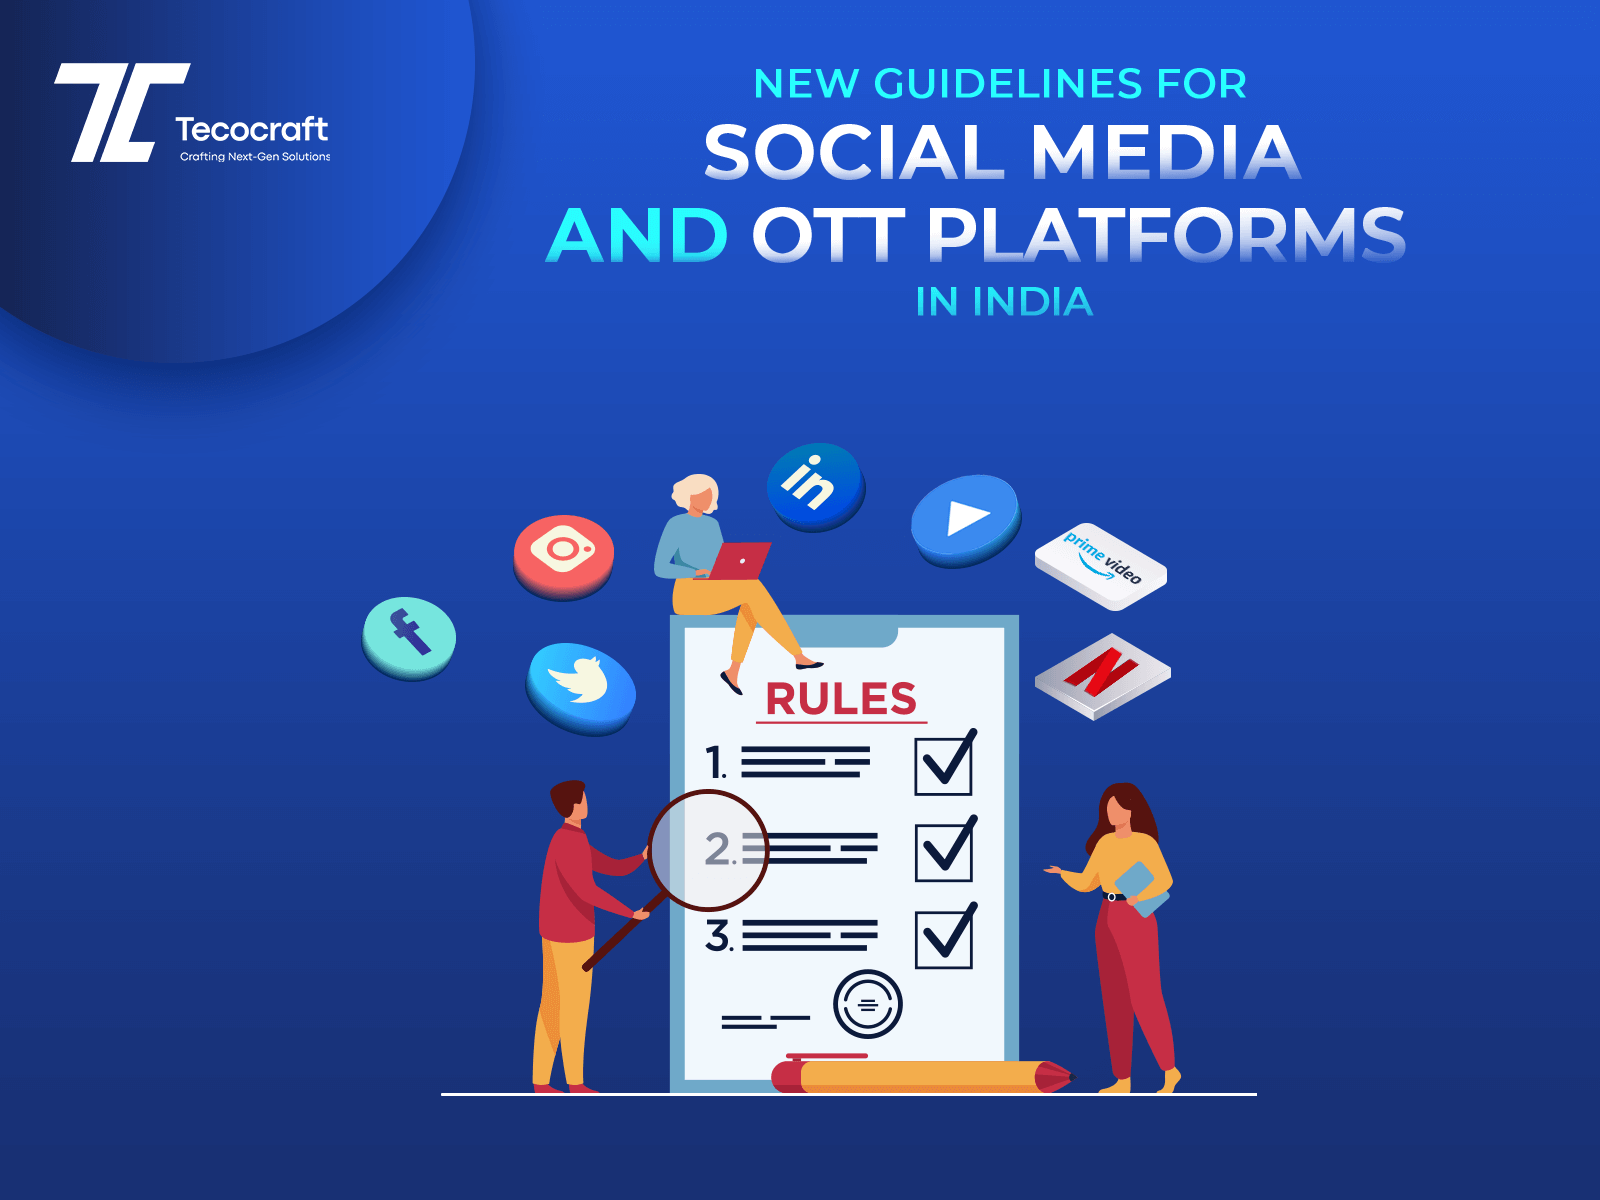 Guidelines for Social Media and OTT Platforms in India